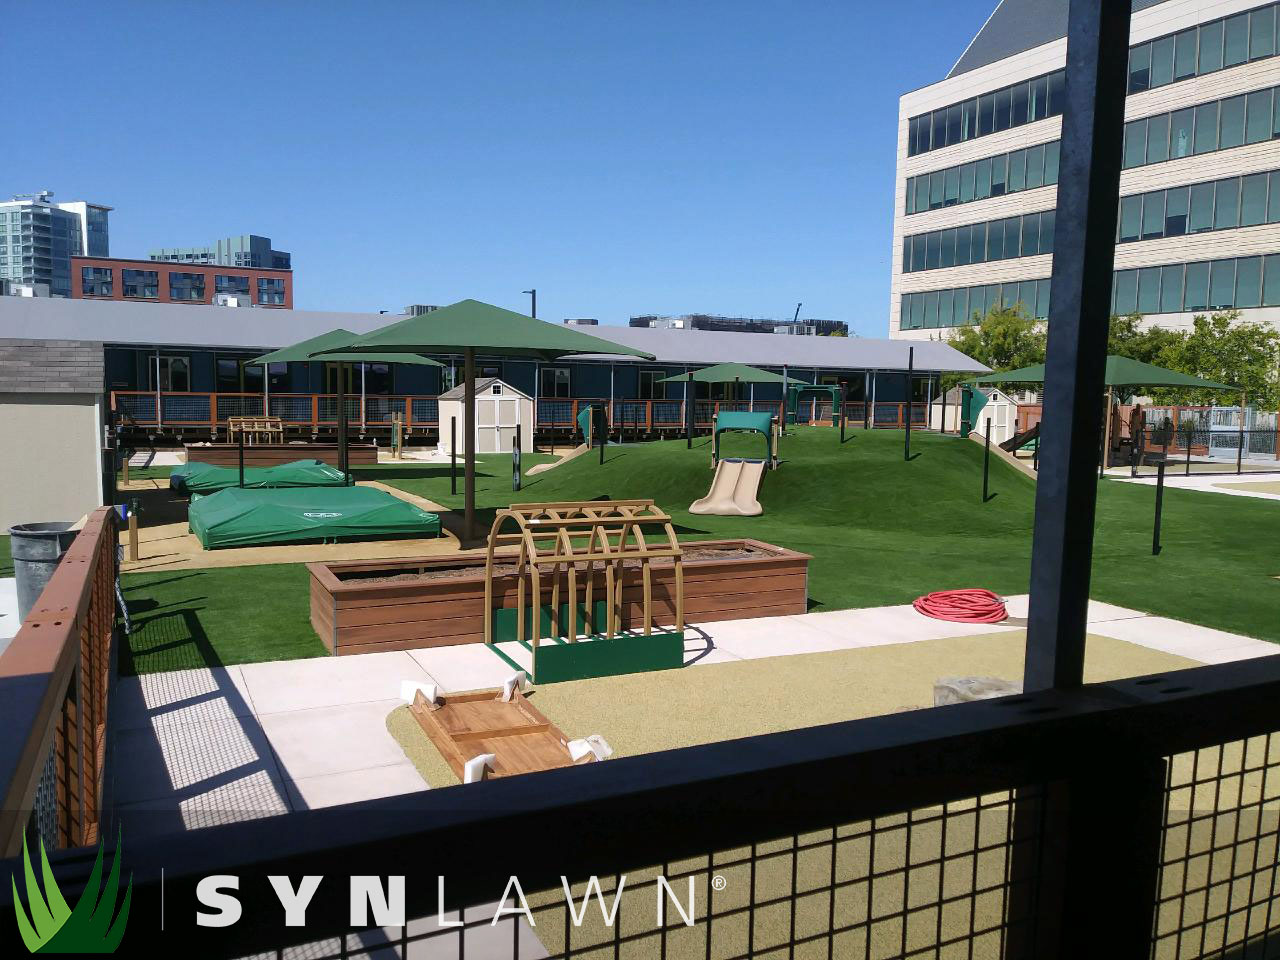 SYNLawn Playground Photo 5